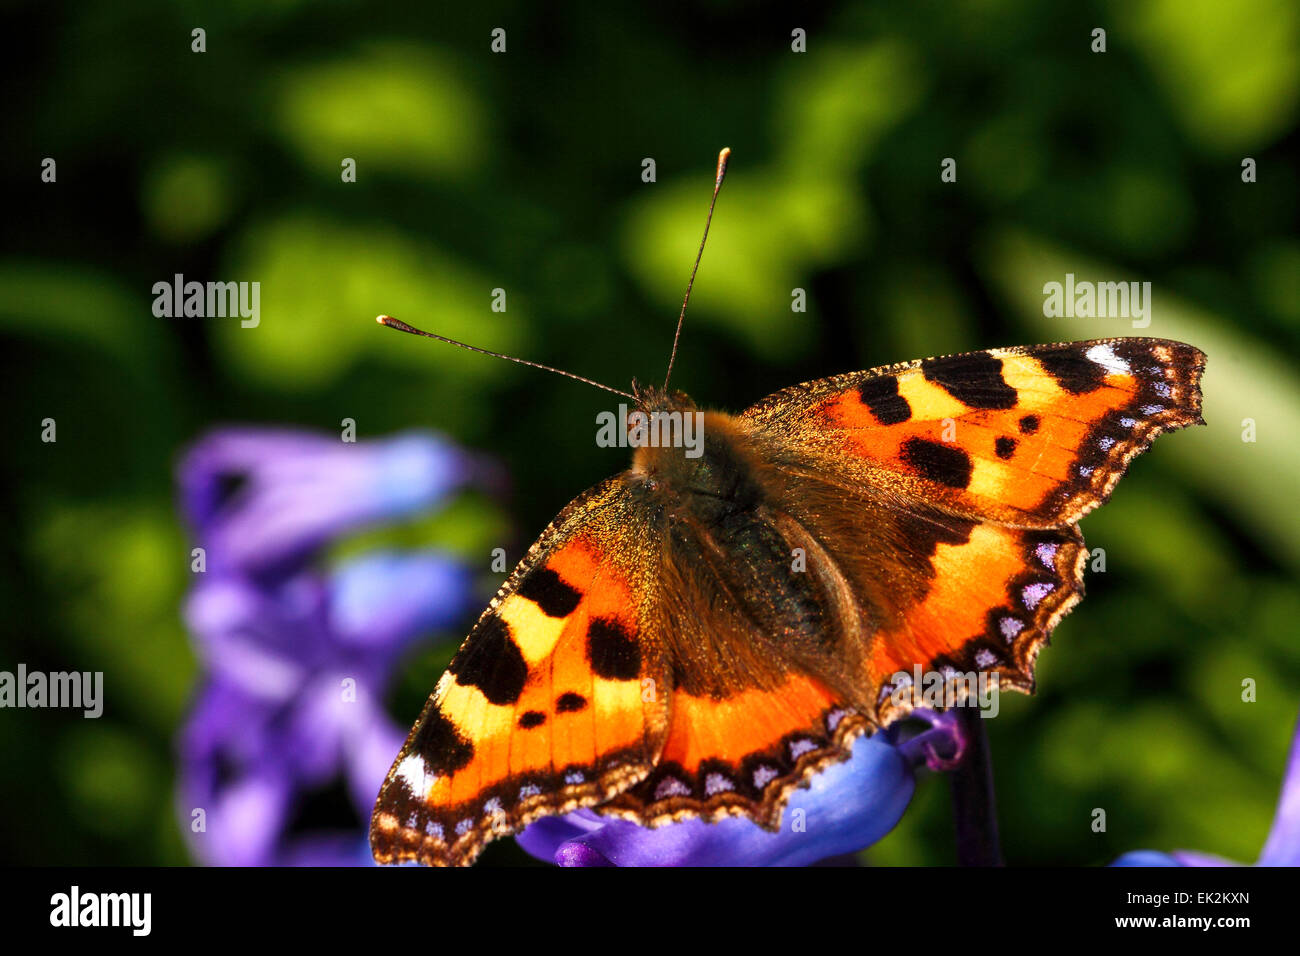 Leeds, UK. 6th April, 2015. A warm Bank Holiday Monday resulted in one of the first sightings of a tortoiseshell - Stock Image